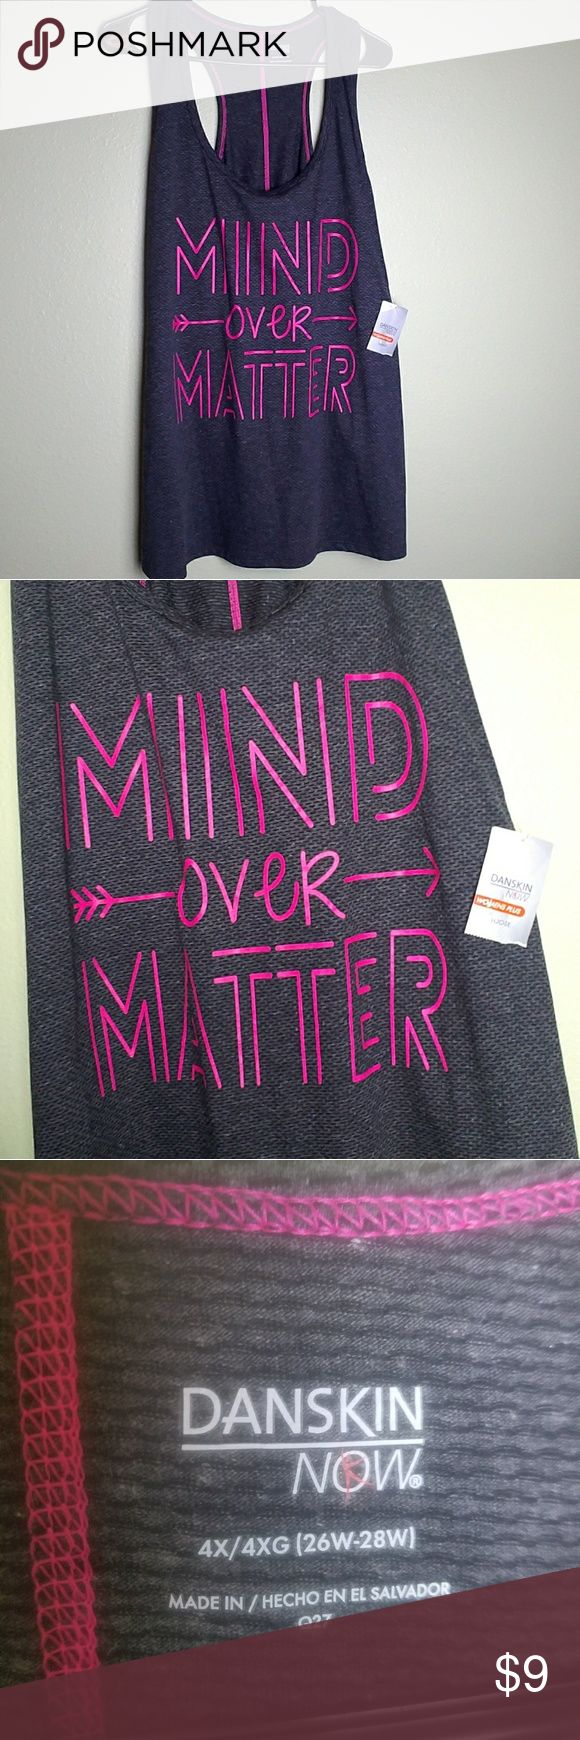 NWT - Workout Tank Dark grey and hot pink sleeveless and Razorback tank by Danskin Now. This is a size 4X with adorable pink stitching and graphic over the front that says Mind Over Matter. Brand new with tags, in great shape! Danskin Now Tops Tank Tops